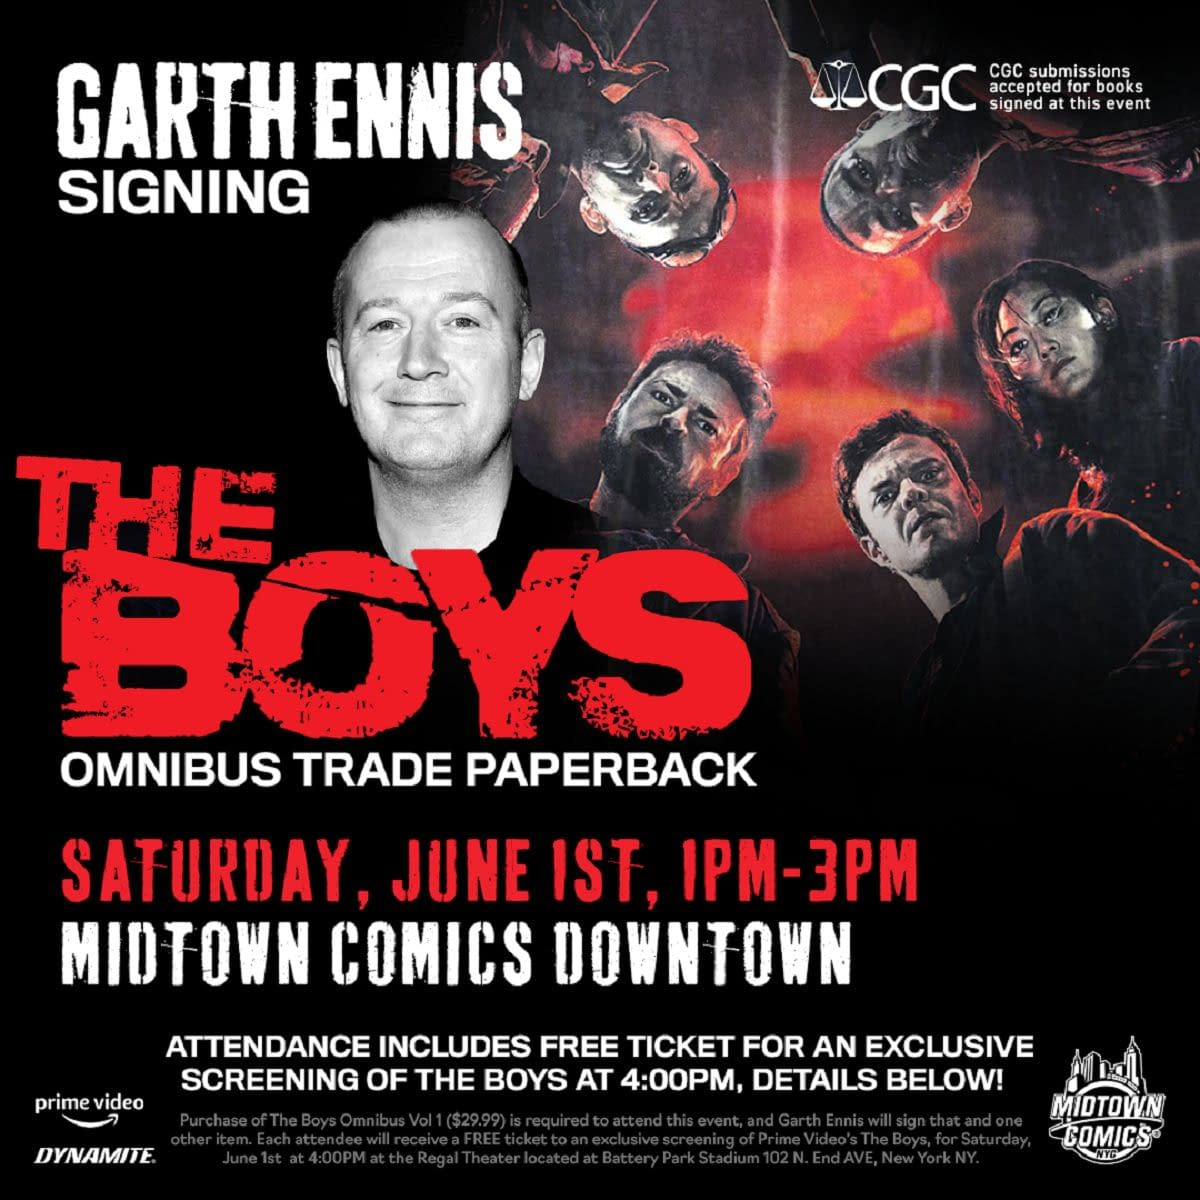 'The Boys': In NYC on June 1st? Midtown Comics Offers Garth Ennis Signing, Free Screening